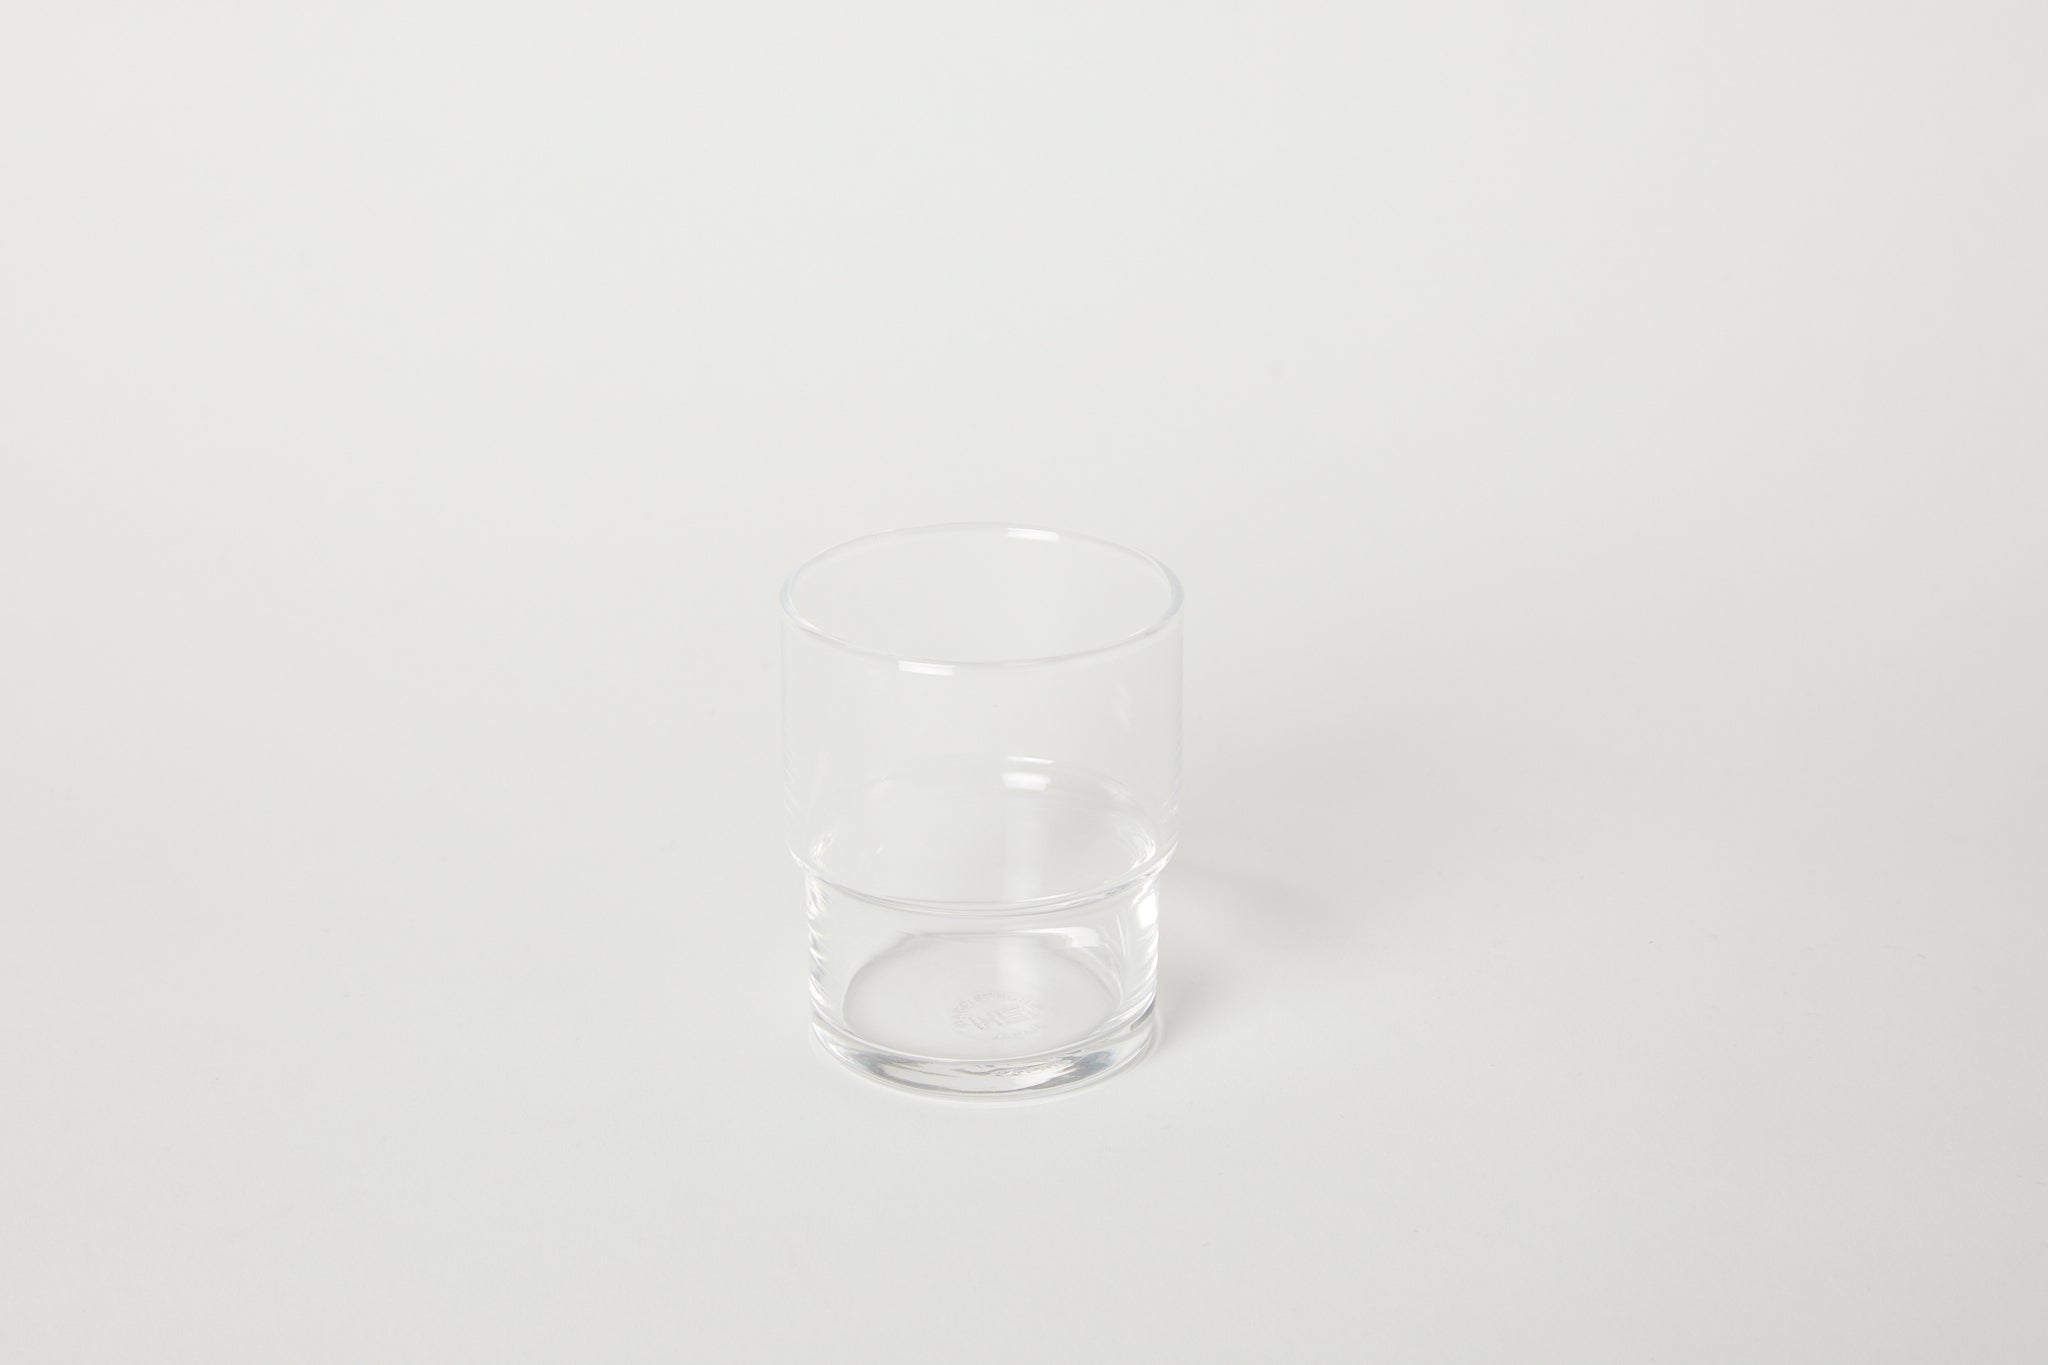 Glass Stacking Tumbler